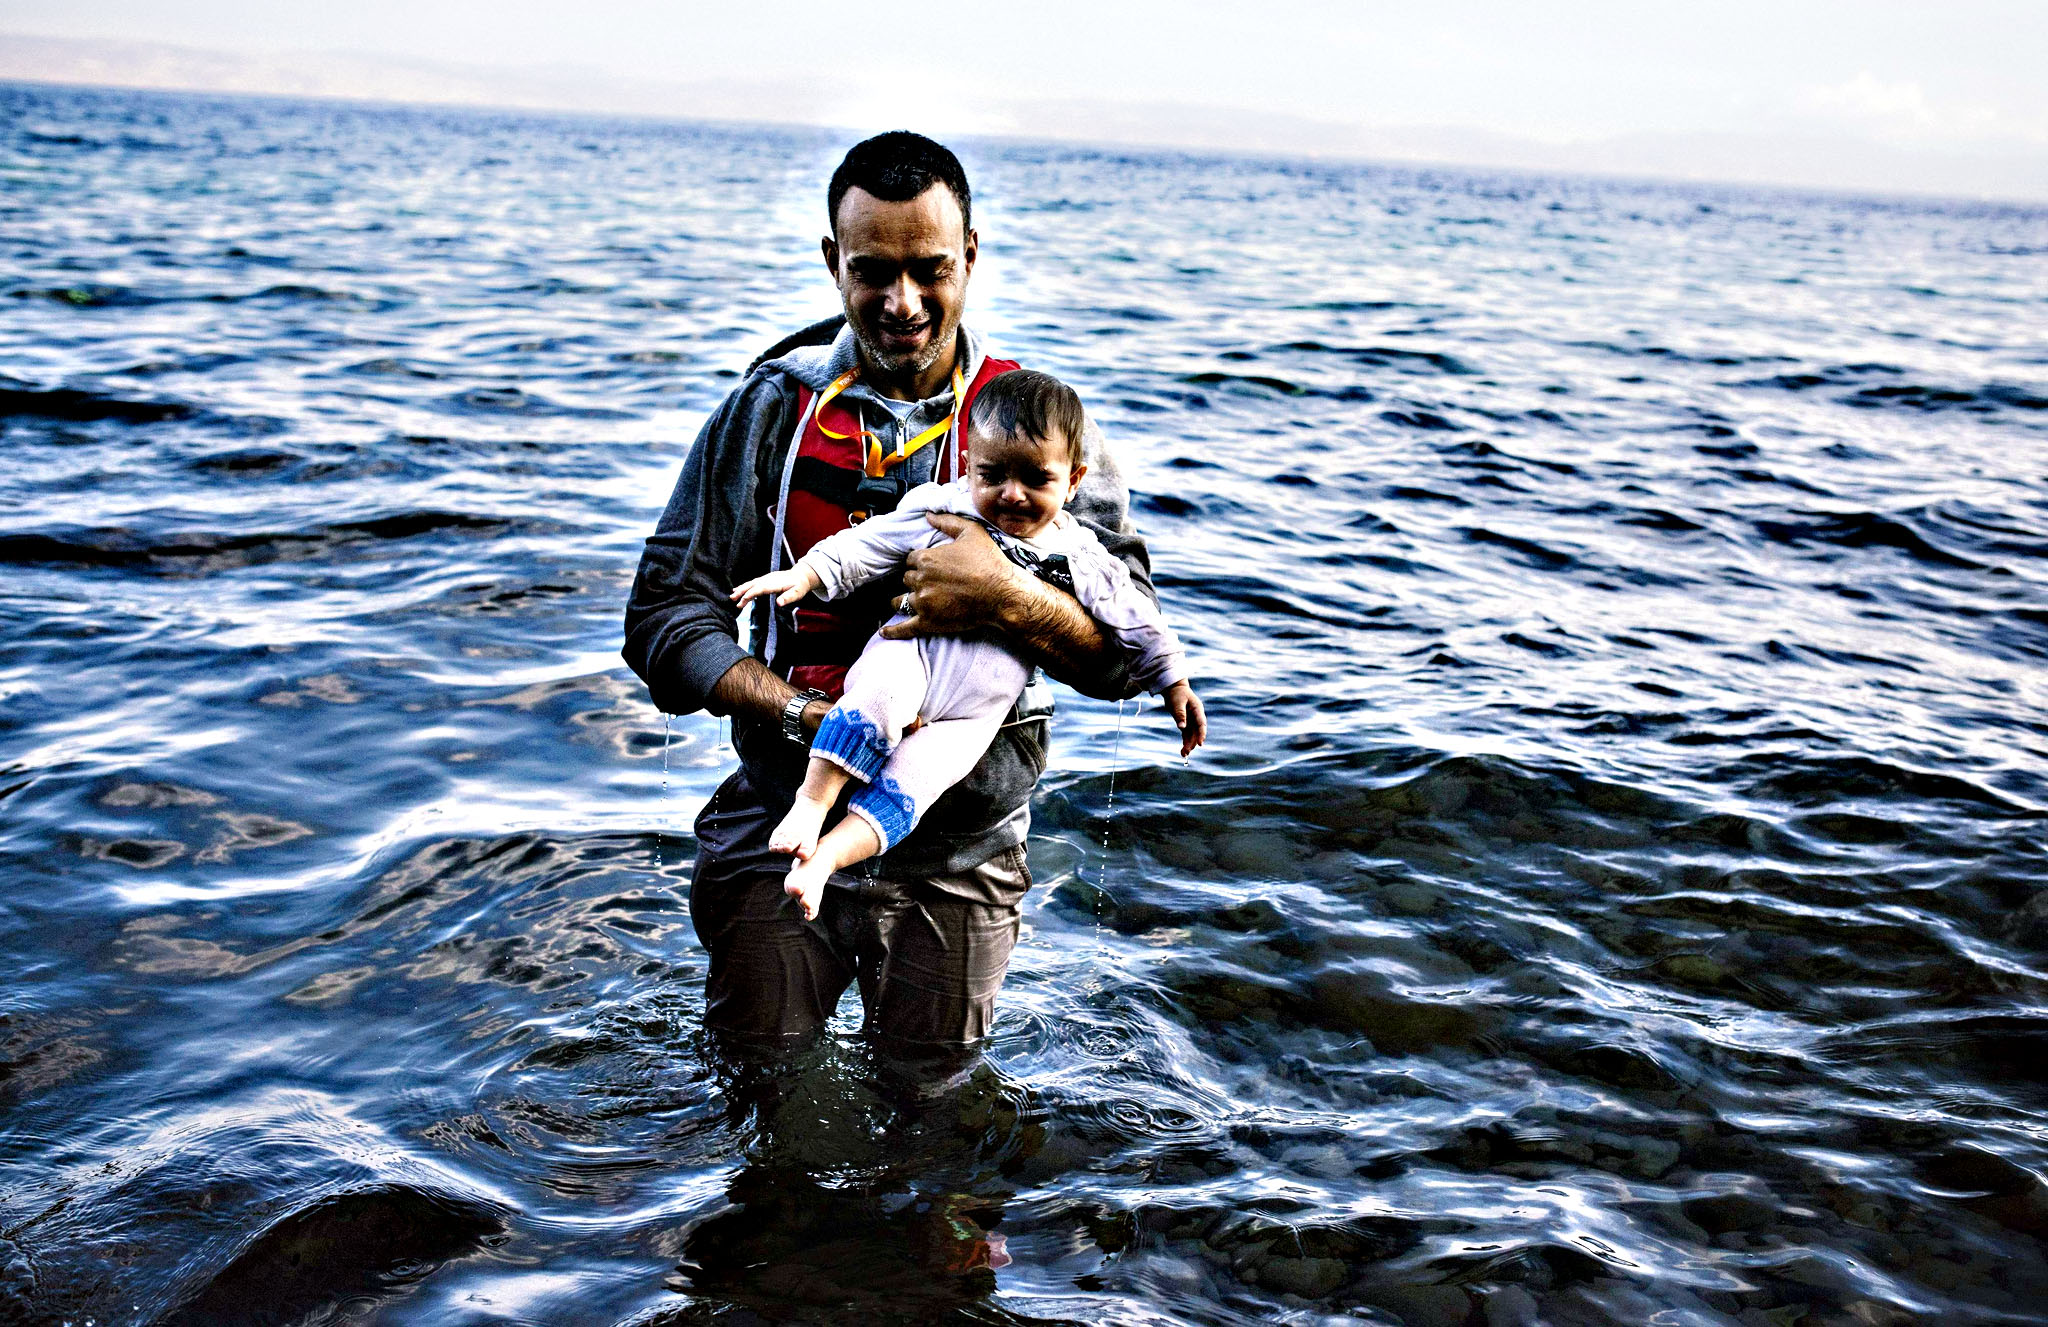 A man carries his child shortly after he arrived, with other refugees and migrants, on the Greek island of Lesbos, after crossing the Aegean sea from Turkey, on October 12, 2015. Greece was hit by a huge new surge in migrants as the United Nations on October 9 approved a European seize-and-destroy military operation against people smugglers in the Mediterranean.